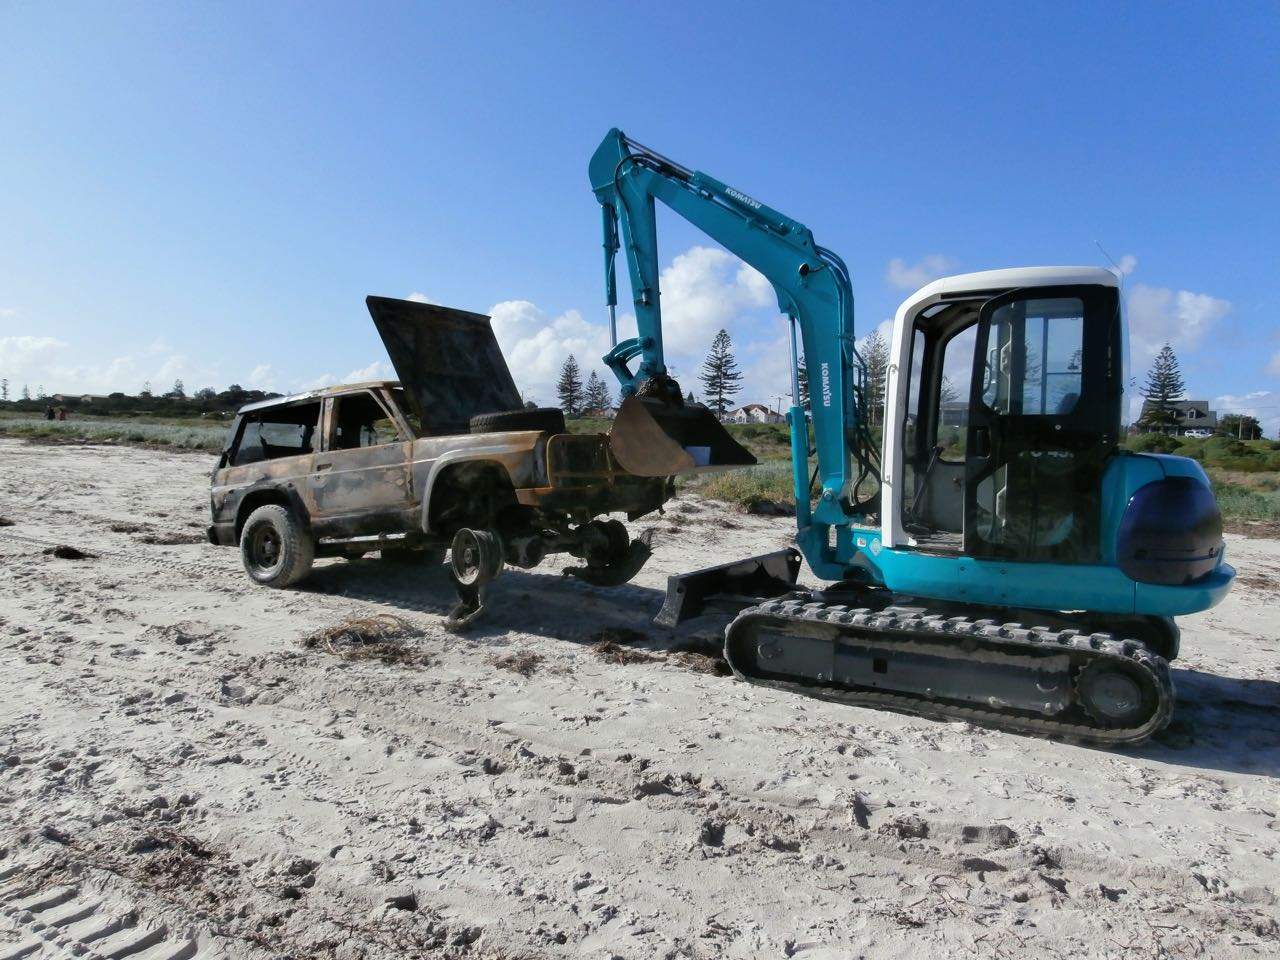 5 TON RUBER TRACKED RECOVERY EXCAVATOR